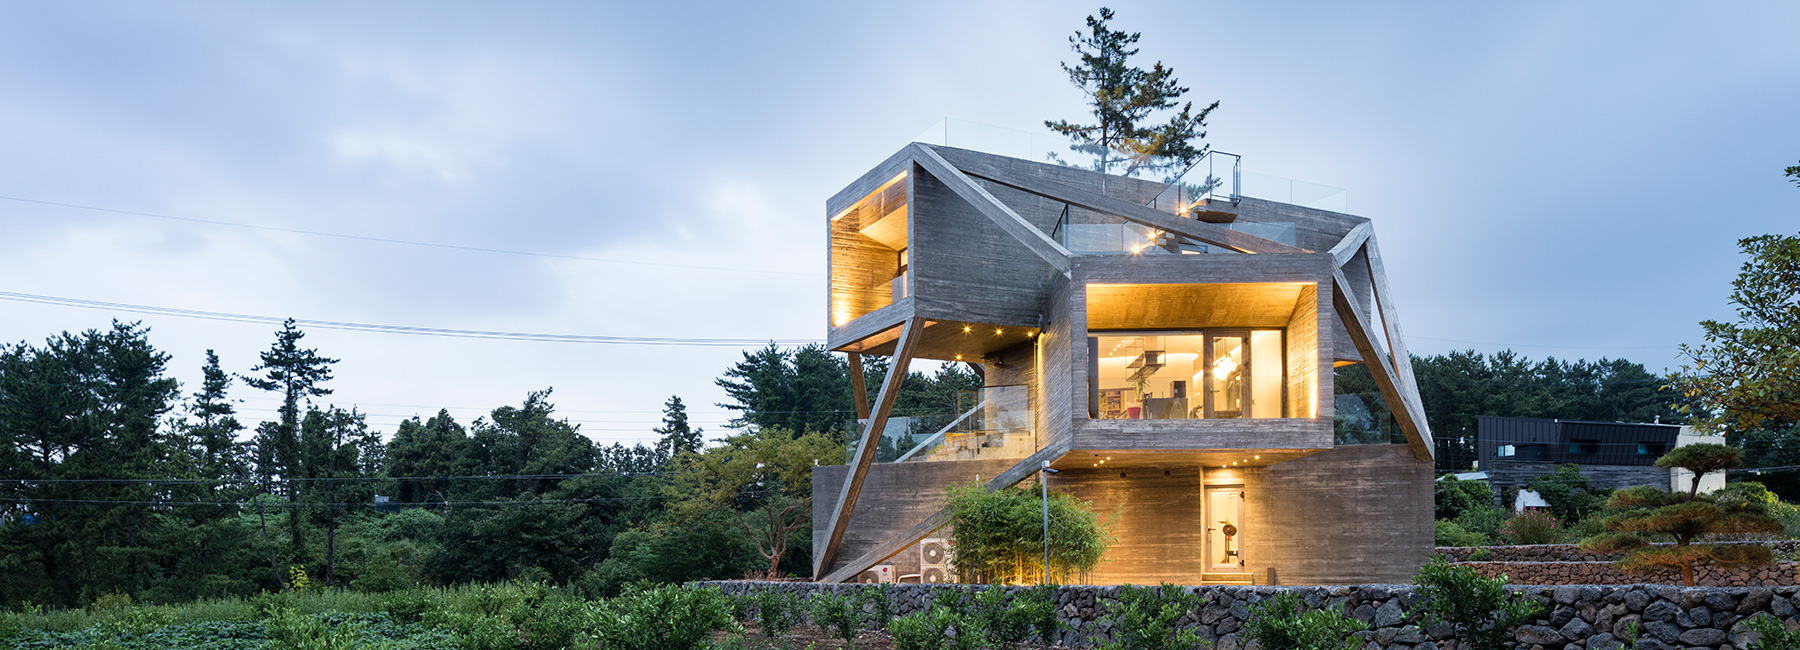 This wacky concrete house is made of angled volumes